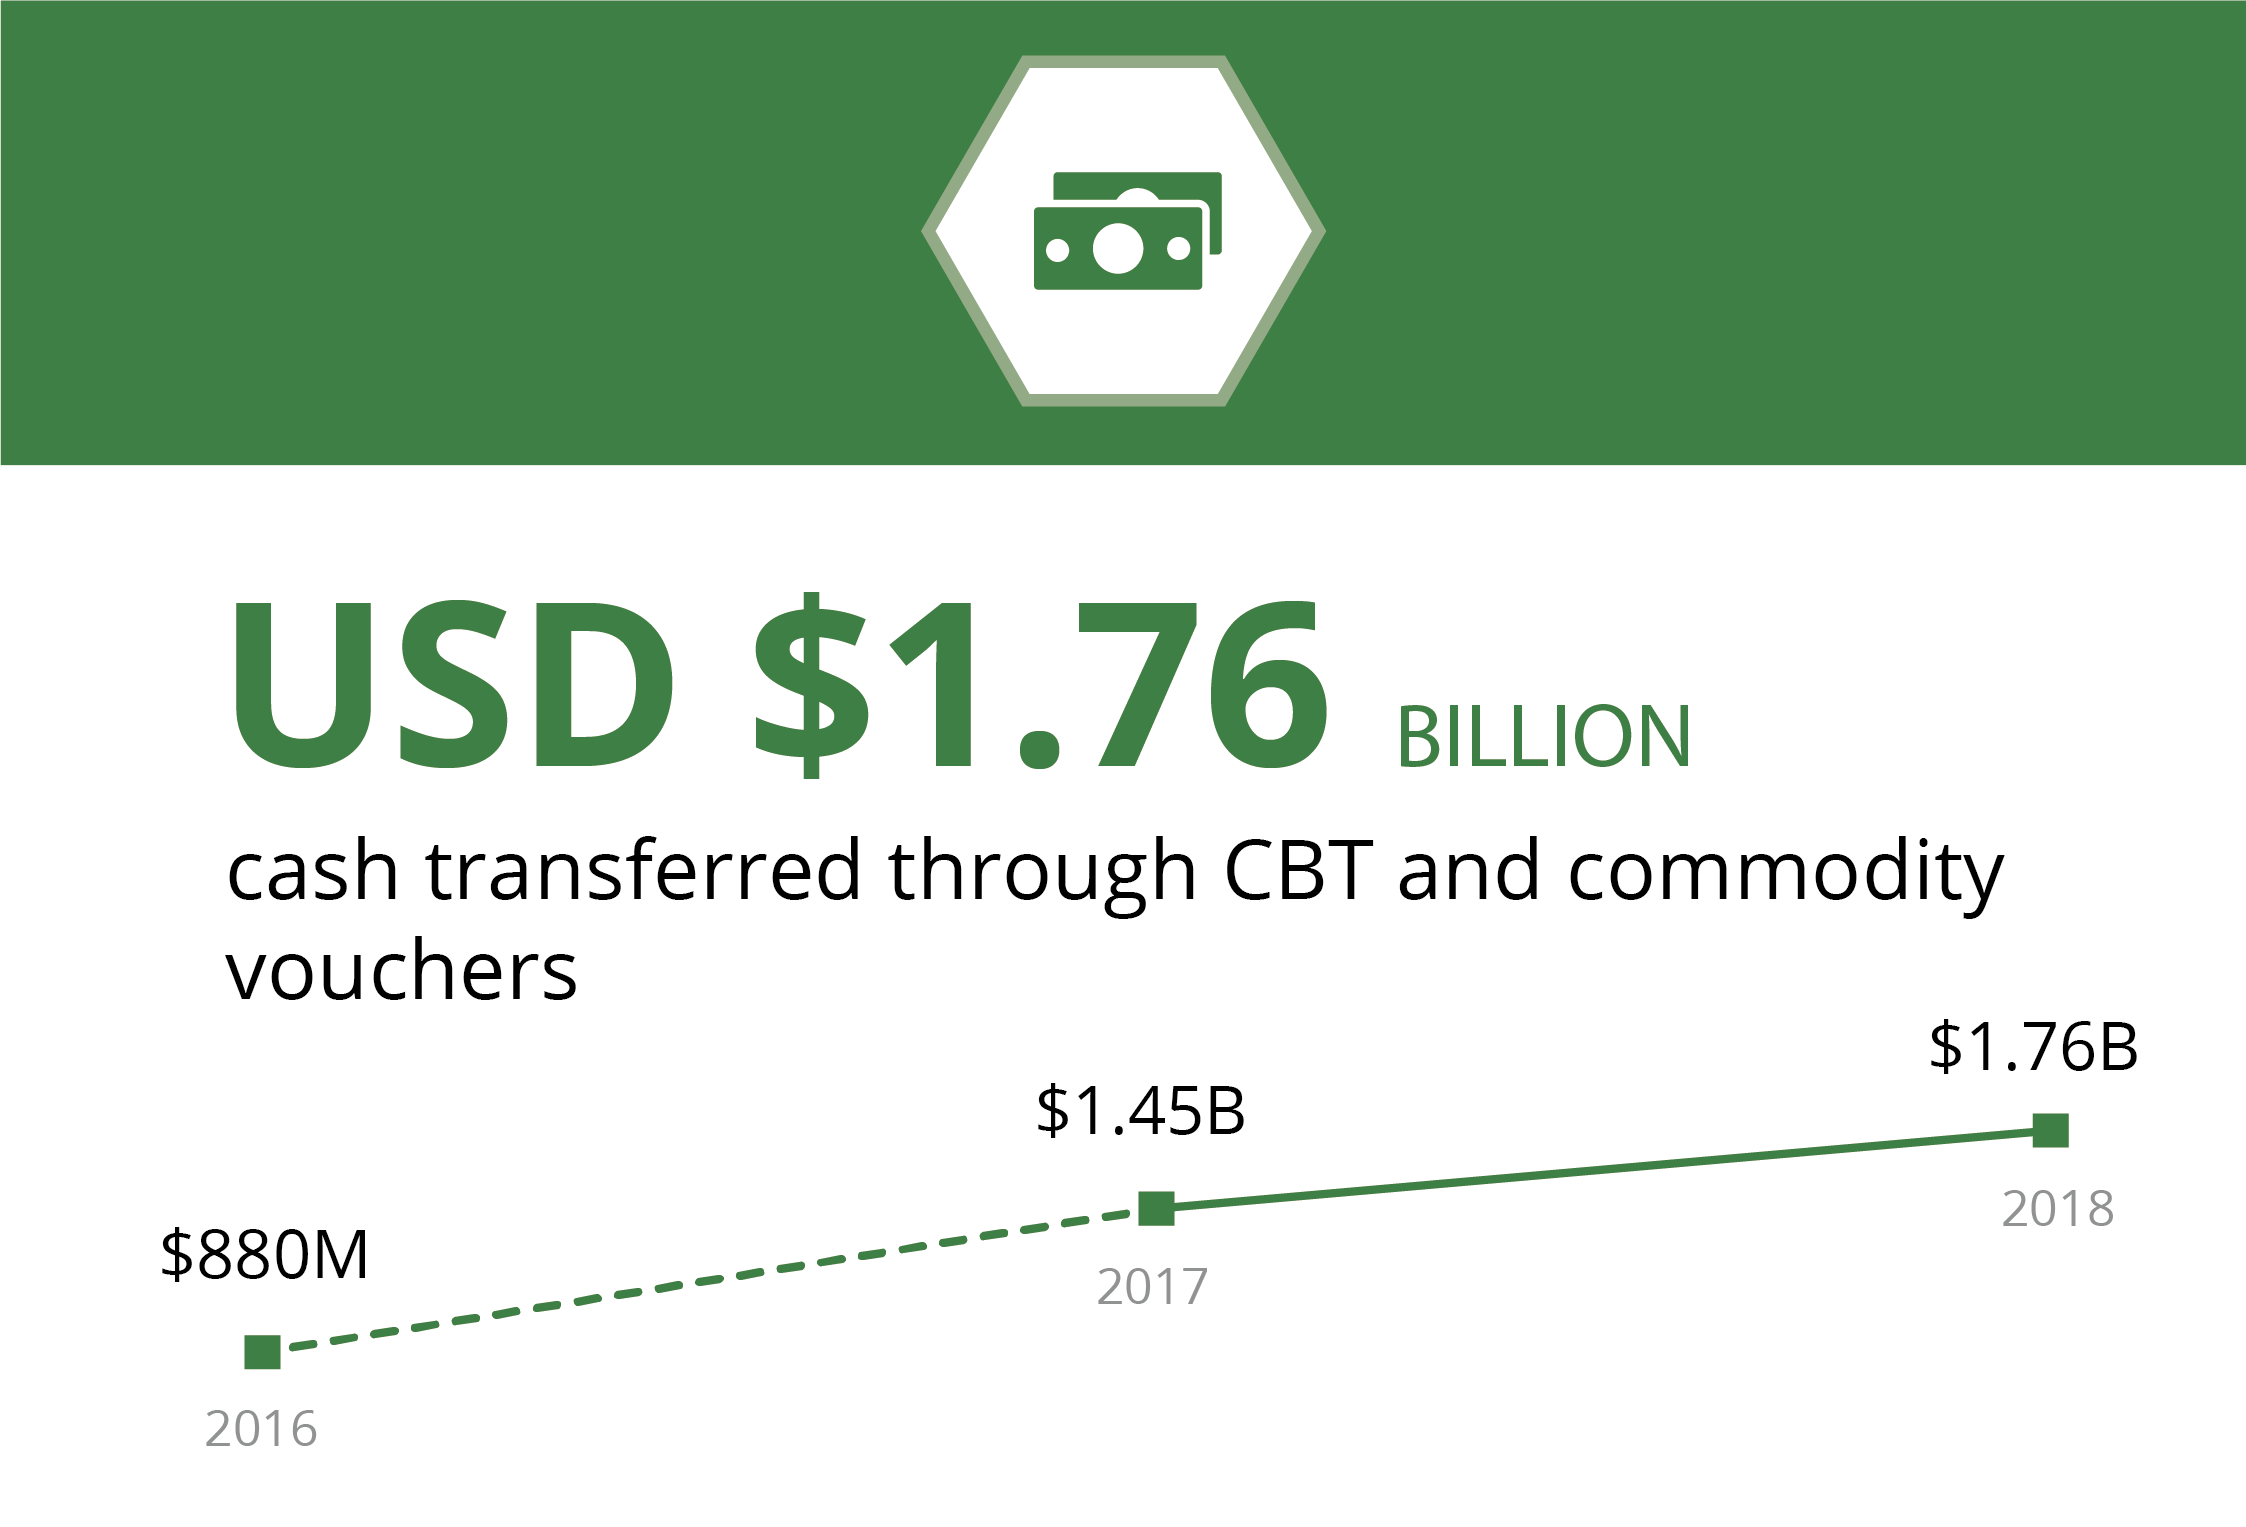 USD $1.76 billion cash transferred in CBT and commodity vouchers